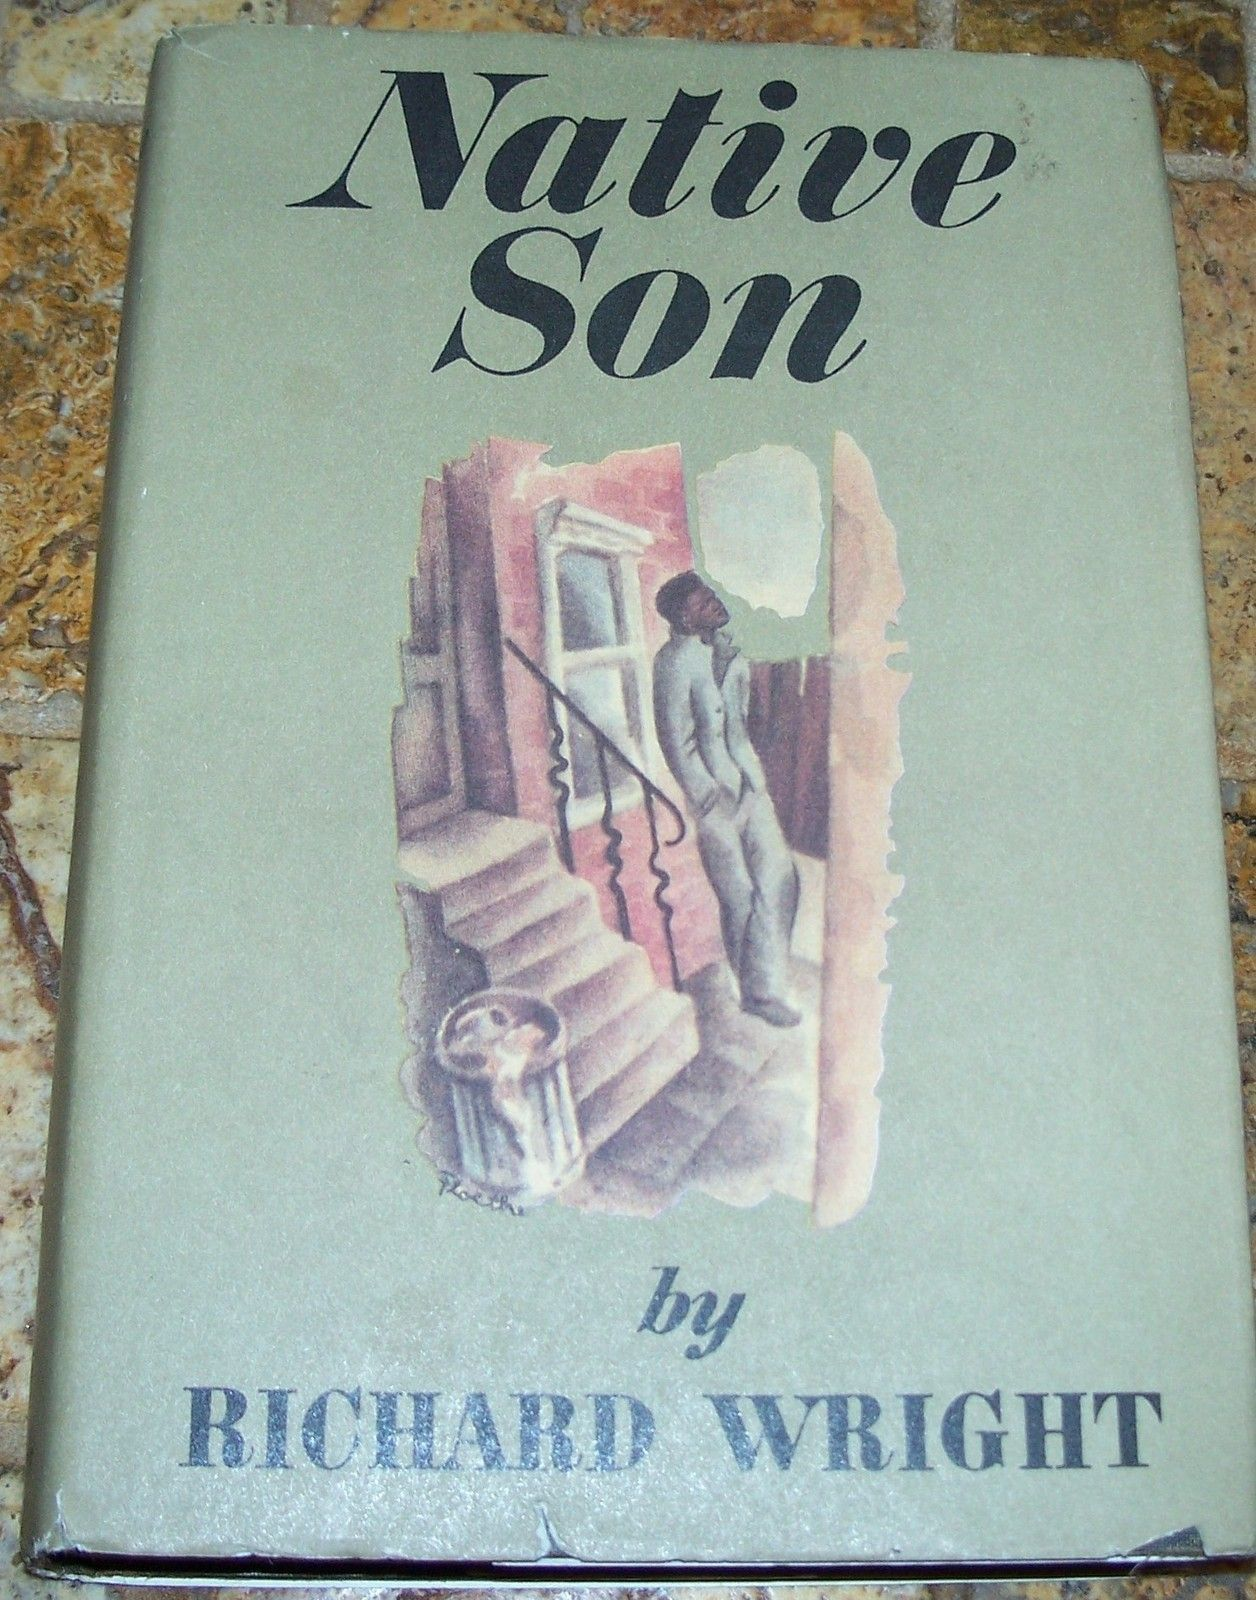 an analysis of native son